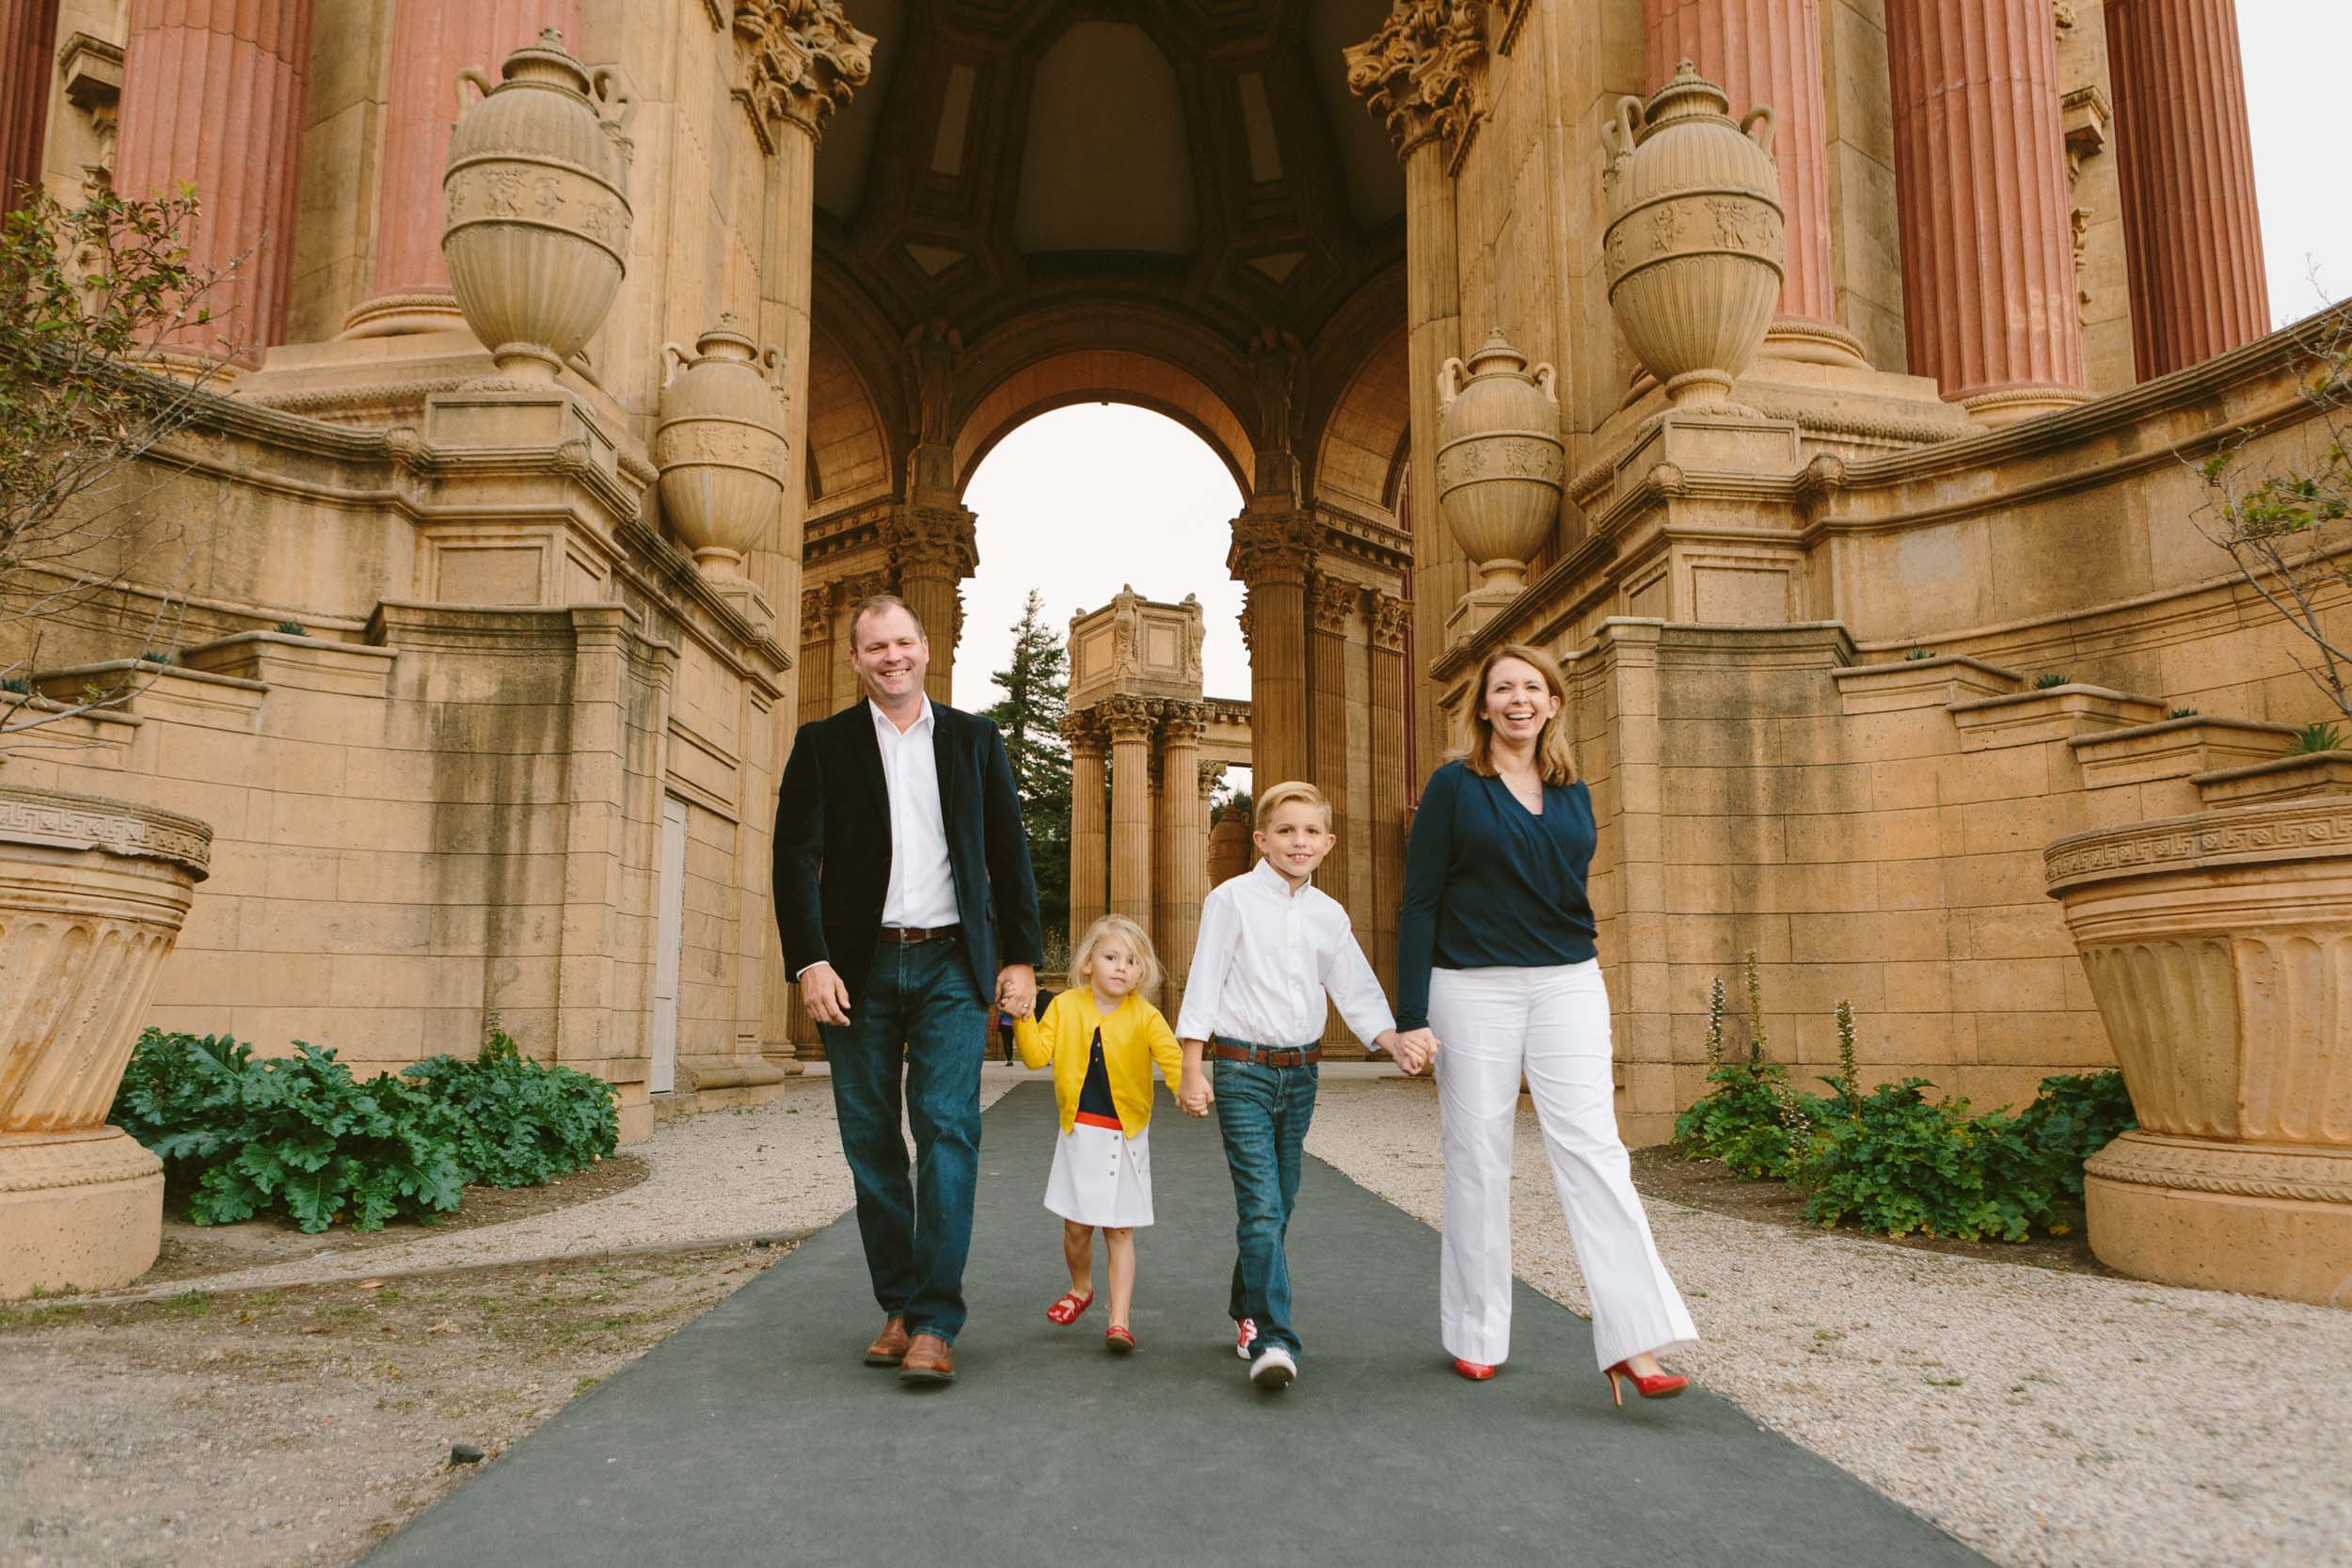 A family of four holds hands and walks near the Palace of Arts in San Francisco.